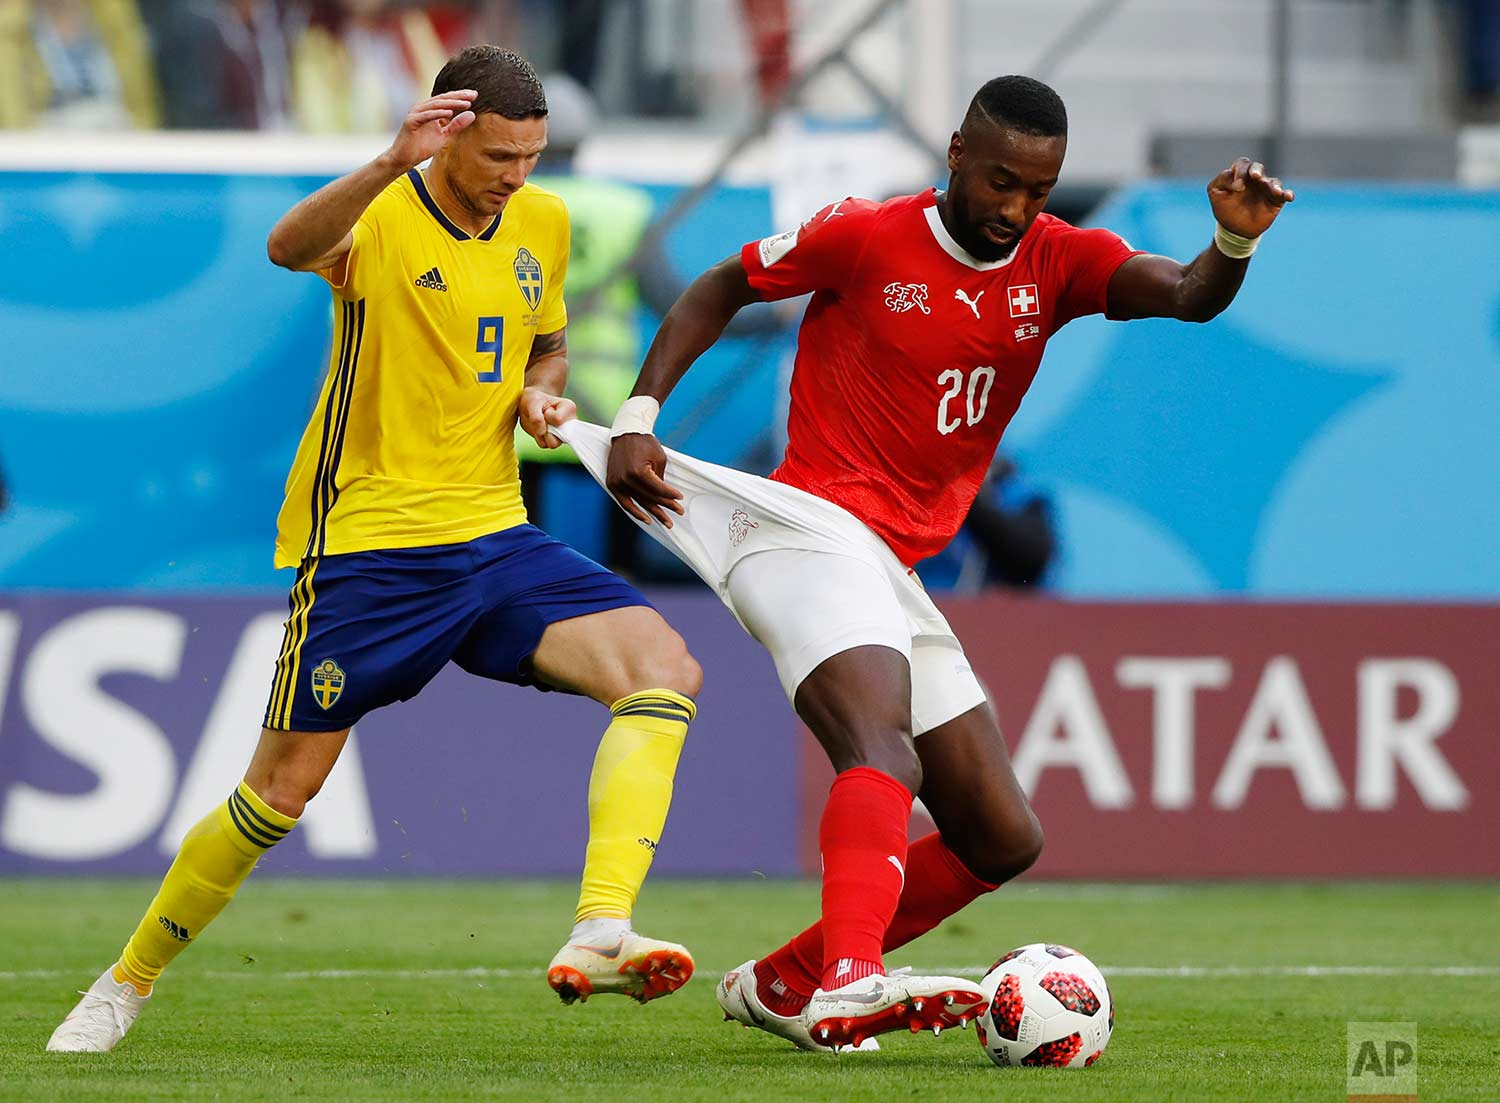 Sweden's Marcus Berg, left, battles for the ball with Switzerland's Johan Djourou during the round of 16 match between Switzerland and Sweden at the 2018 soccer World Cup in the St. Petersburg Stadium, in St. Petersburg, Russia, Tuesday, July 3, 2018. (AP Photo/Darko Bandic)